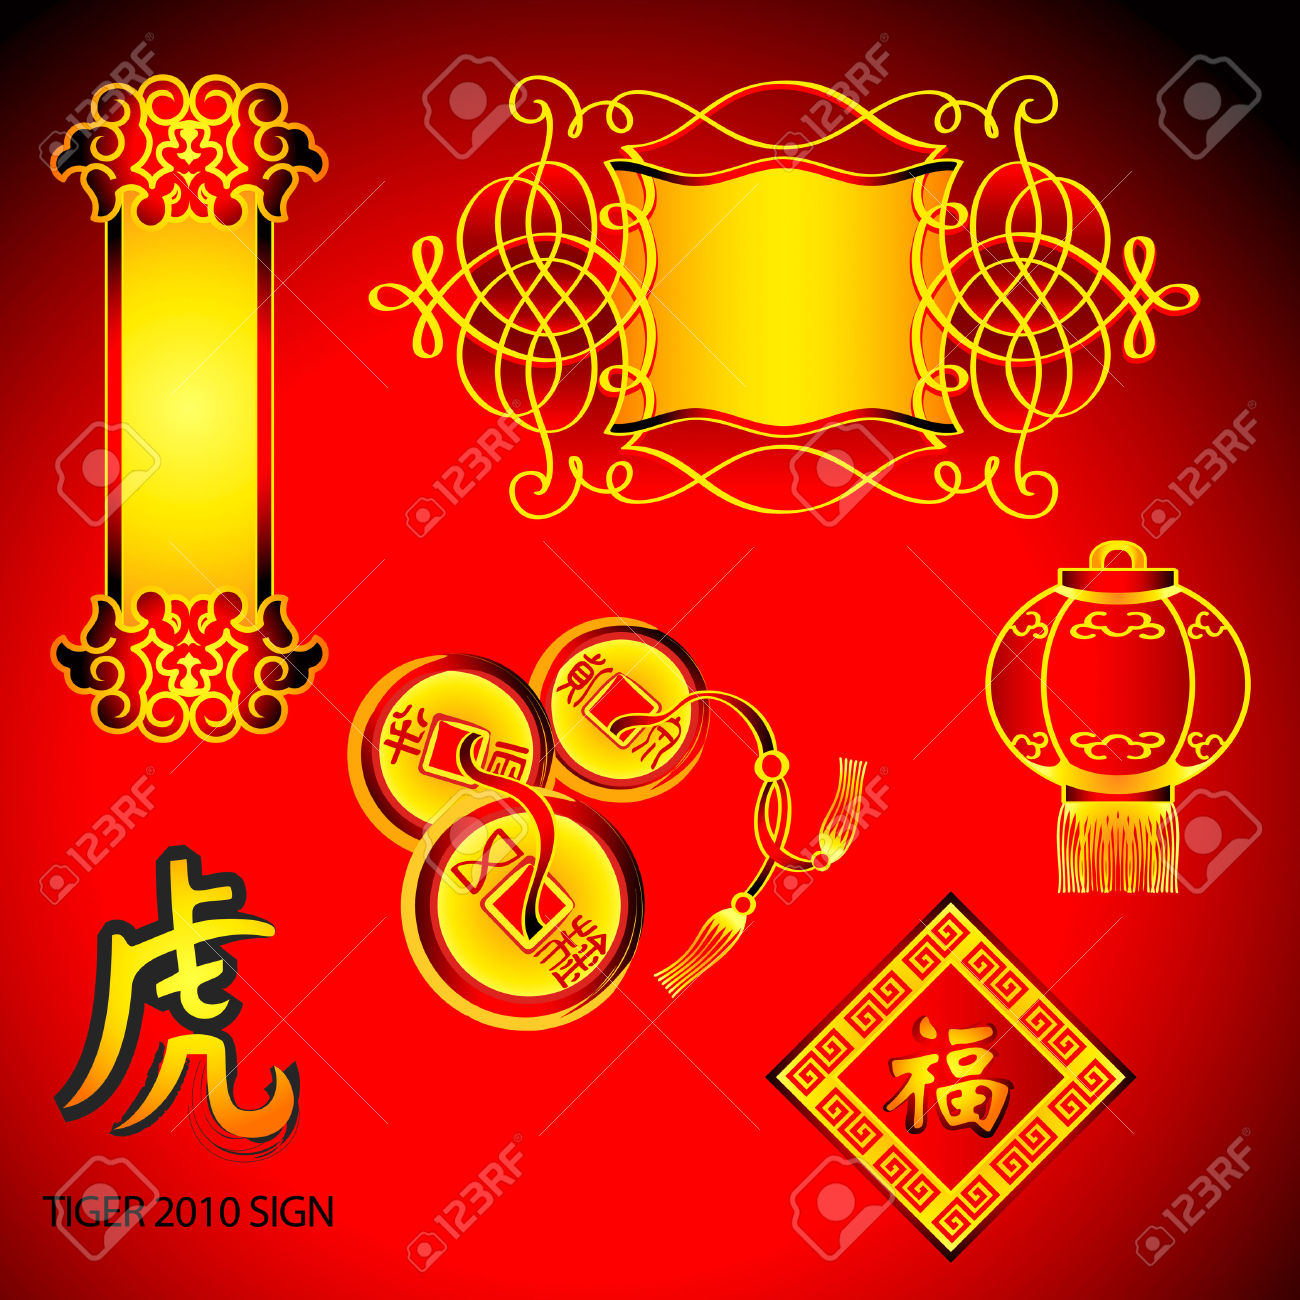 Chinese New Year Decoration Elements: Scroll, Banner, Lucky Coins.